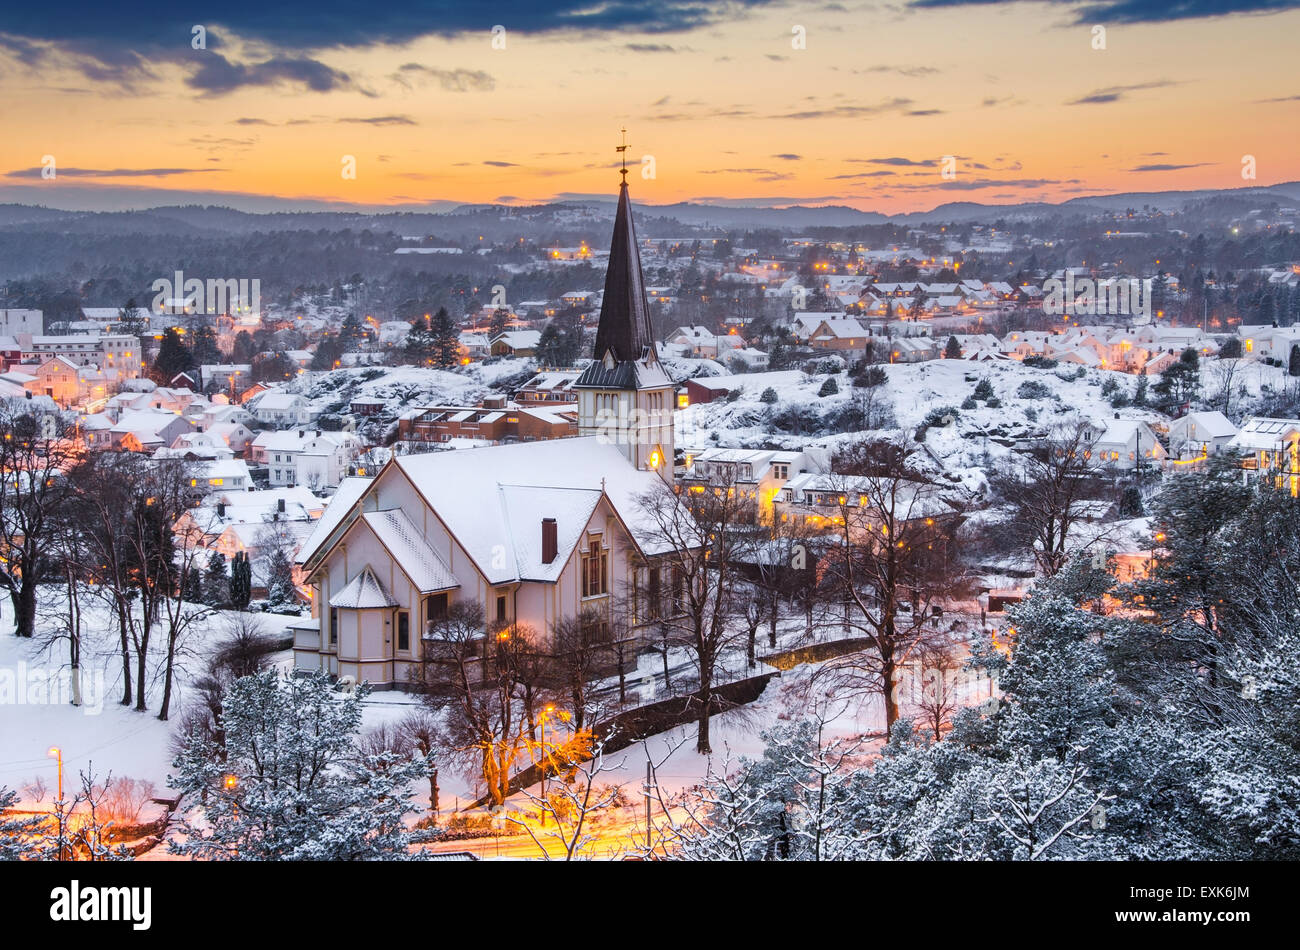 First snow of the year in Grimstad. Photo taken from Binabben look-out point during sunset. - Stock Image